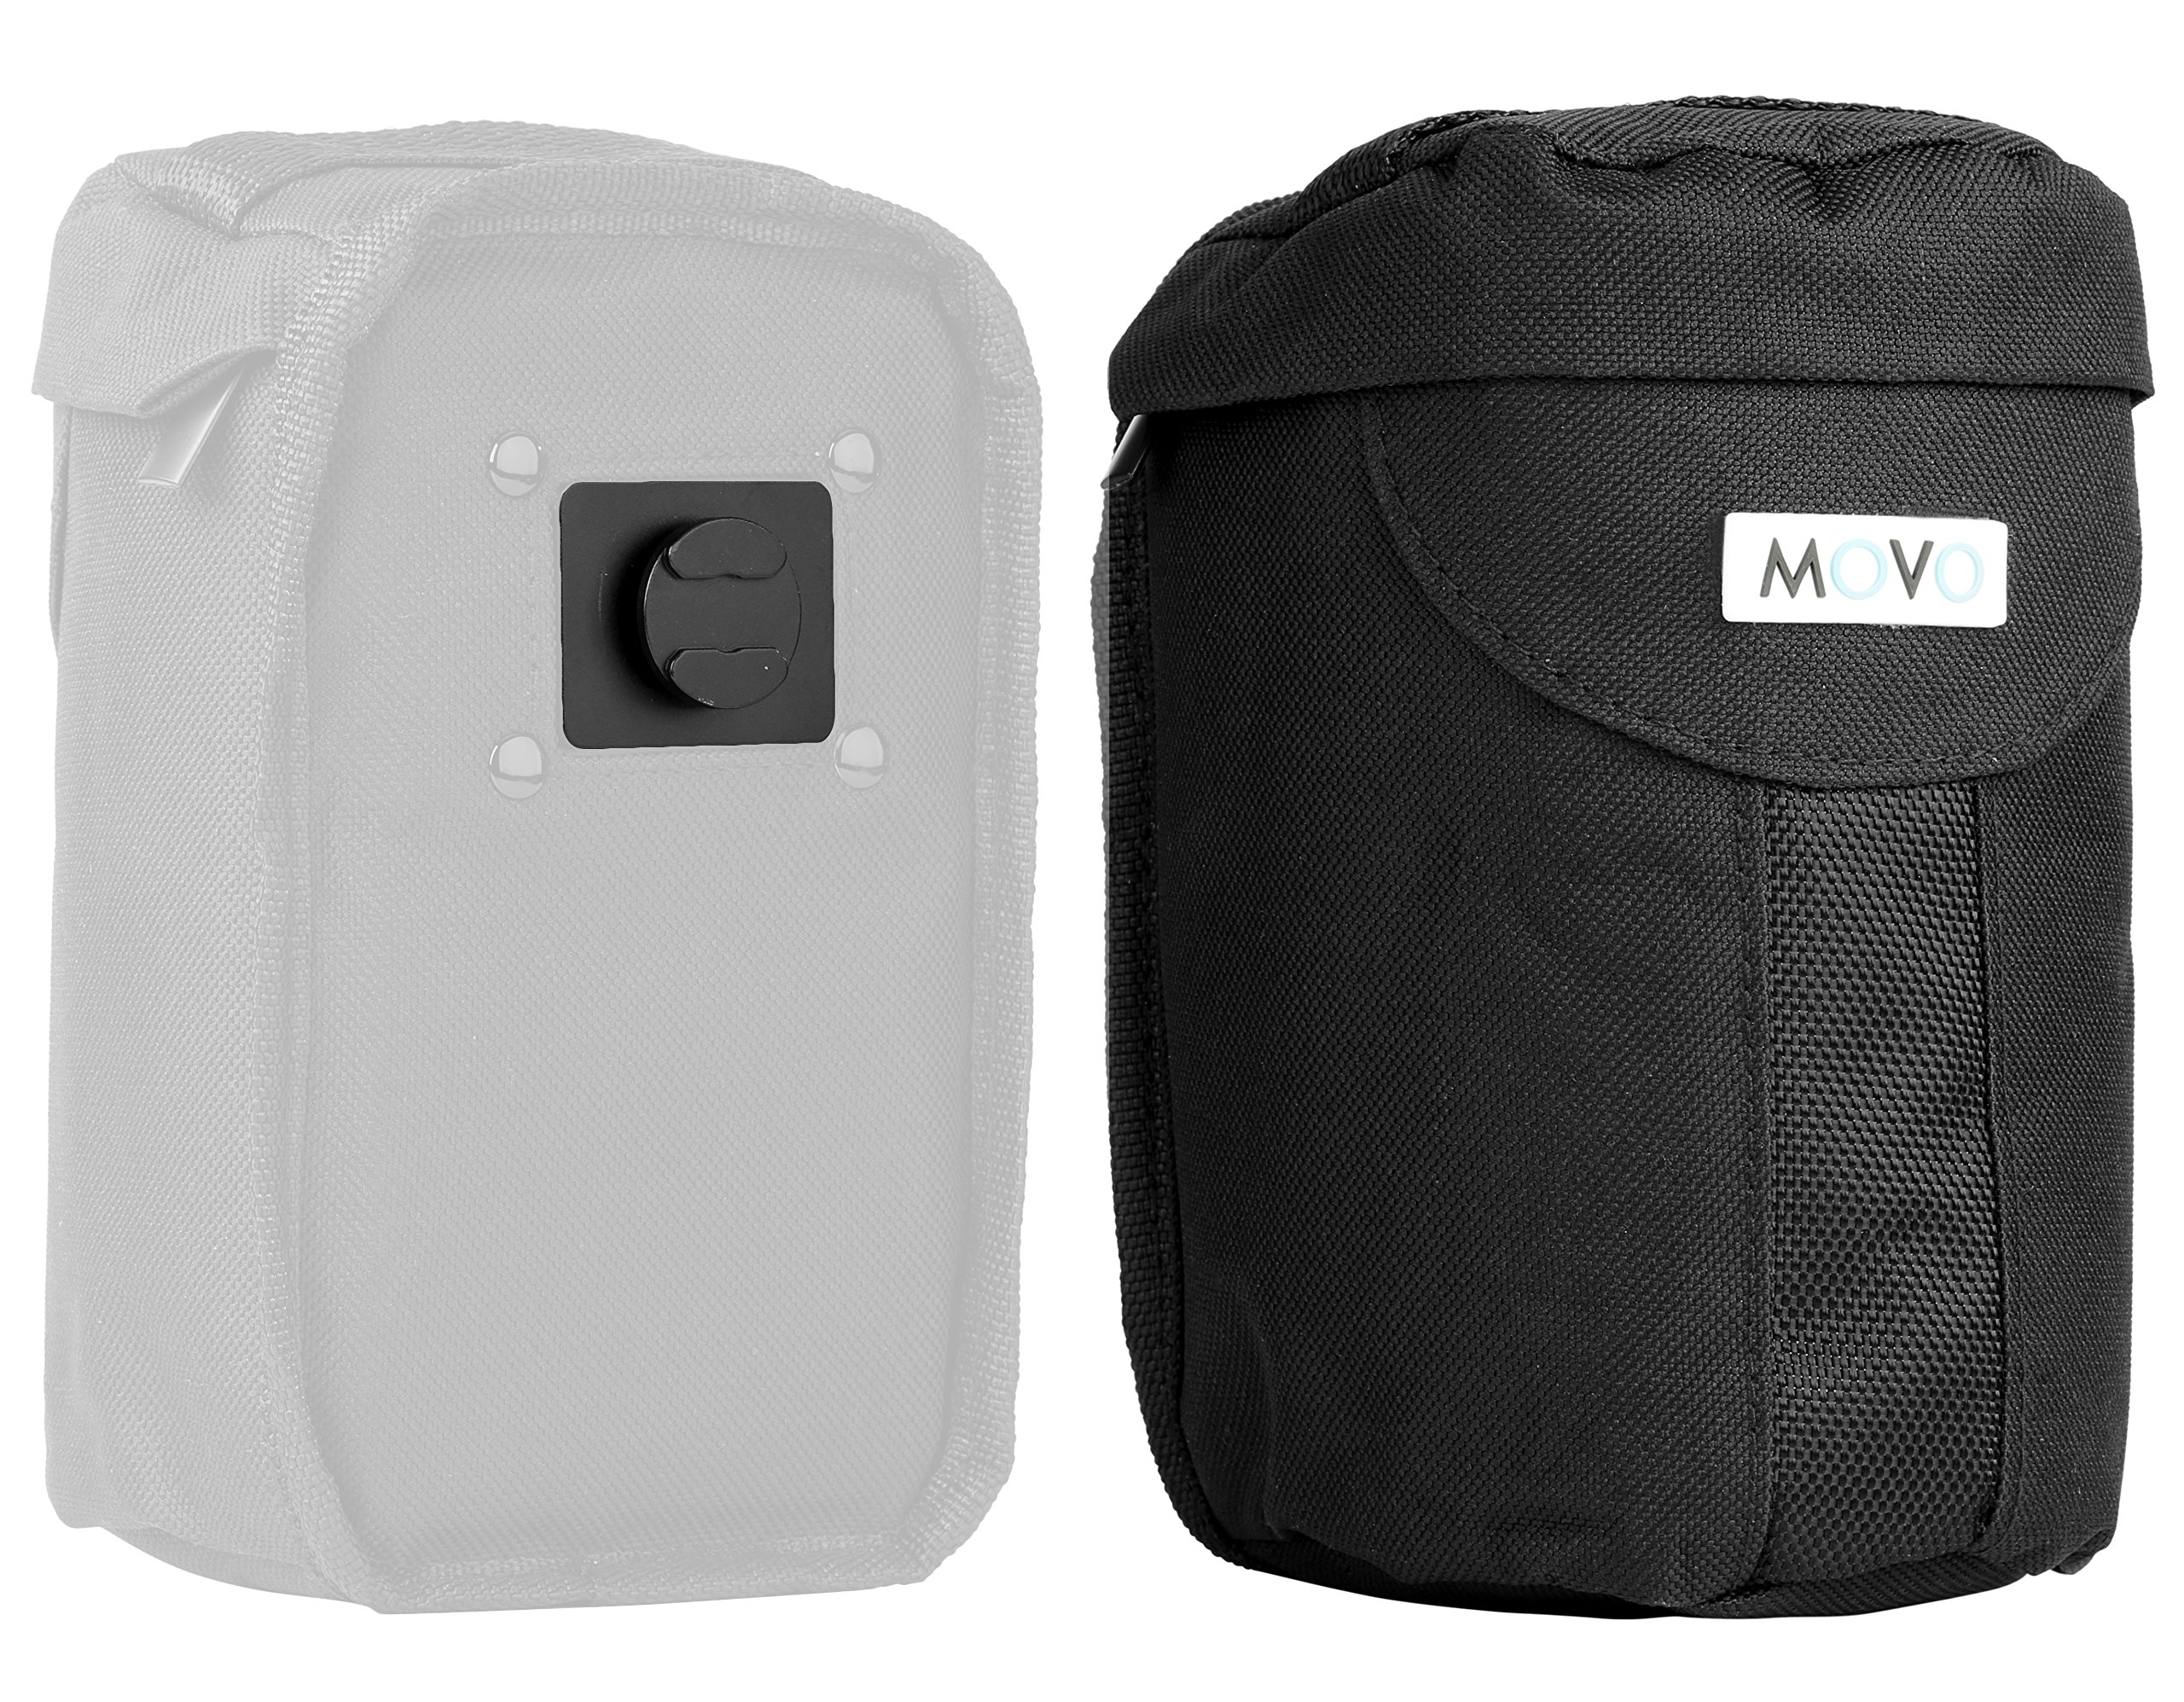 Movo LCB300 Lens Pouch Add-on for the MB2000, MB1000, MB700, MB600 Camera Carrier Holster Systems by Movo